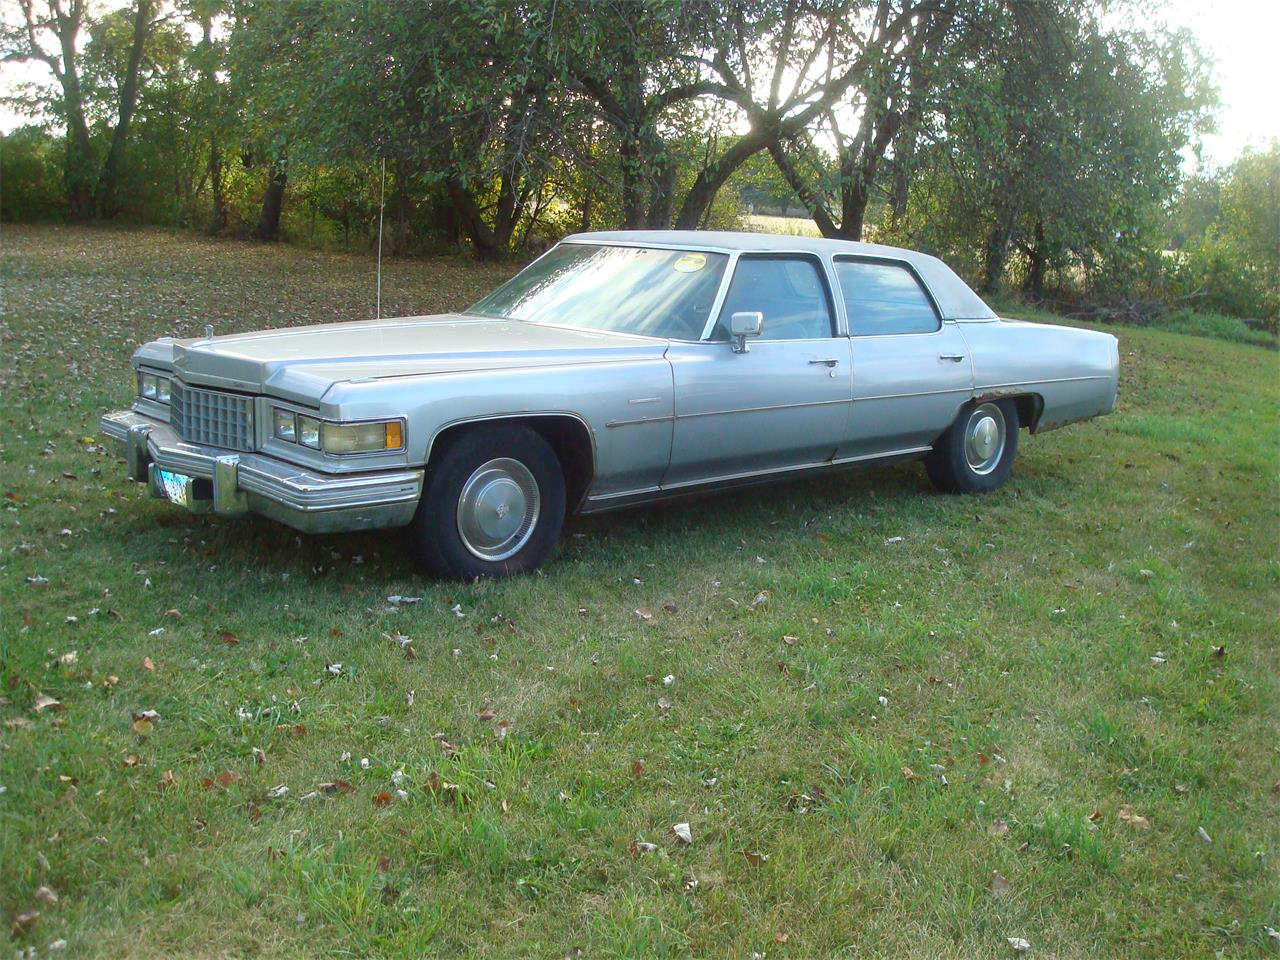 1976 Cadillac Fleetwood Brougham d'Elegance for sale in New London, OH